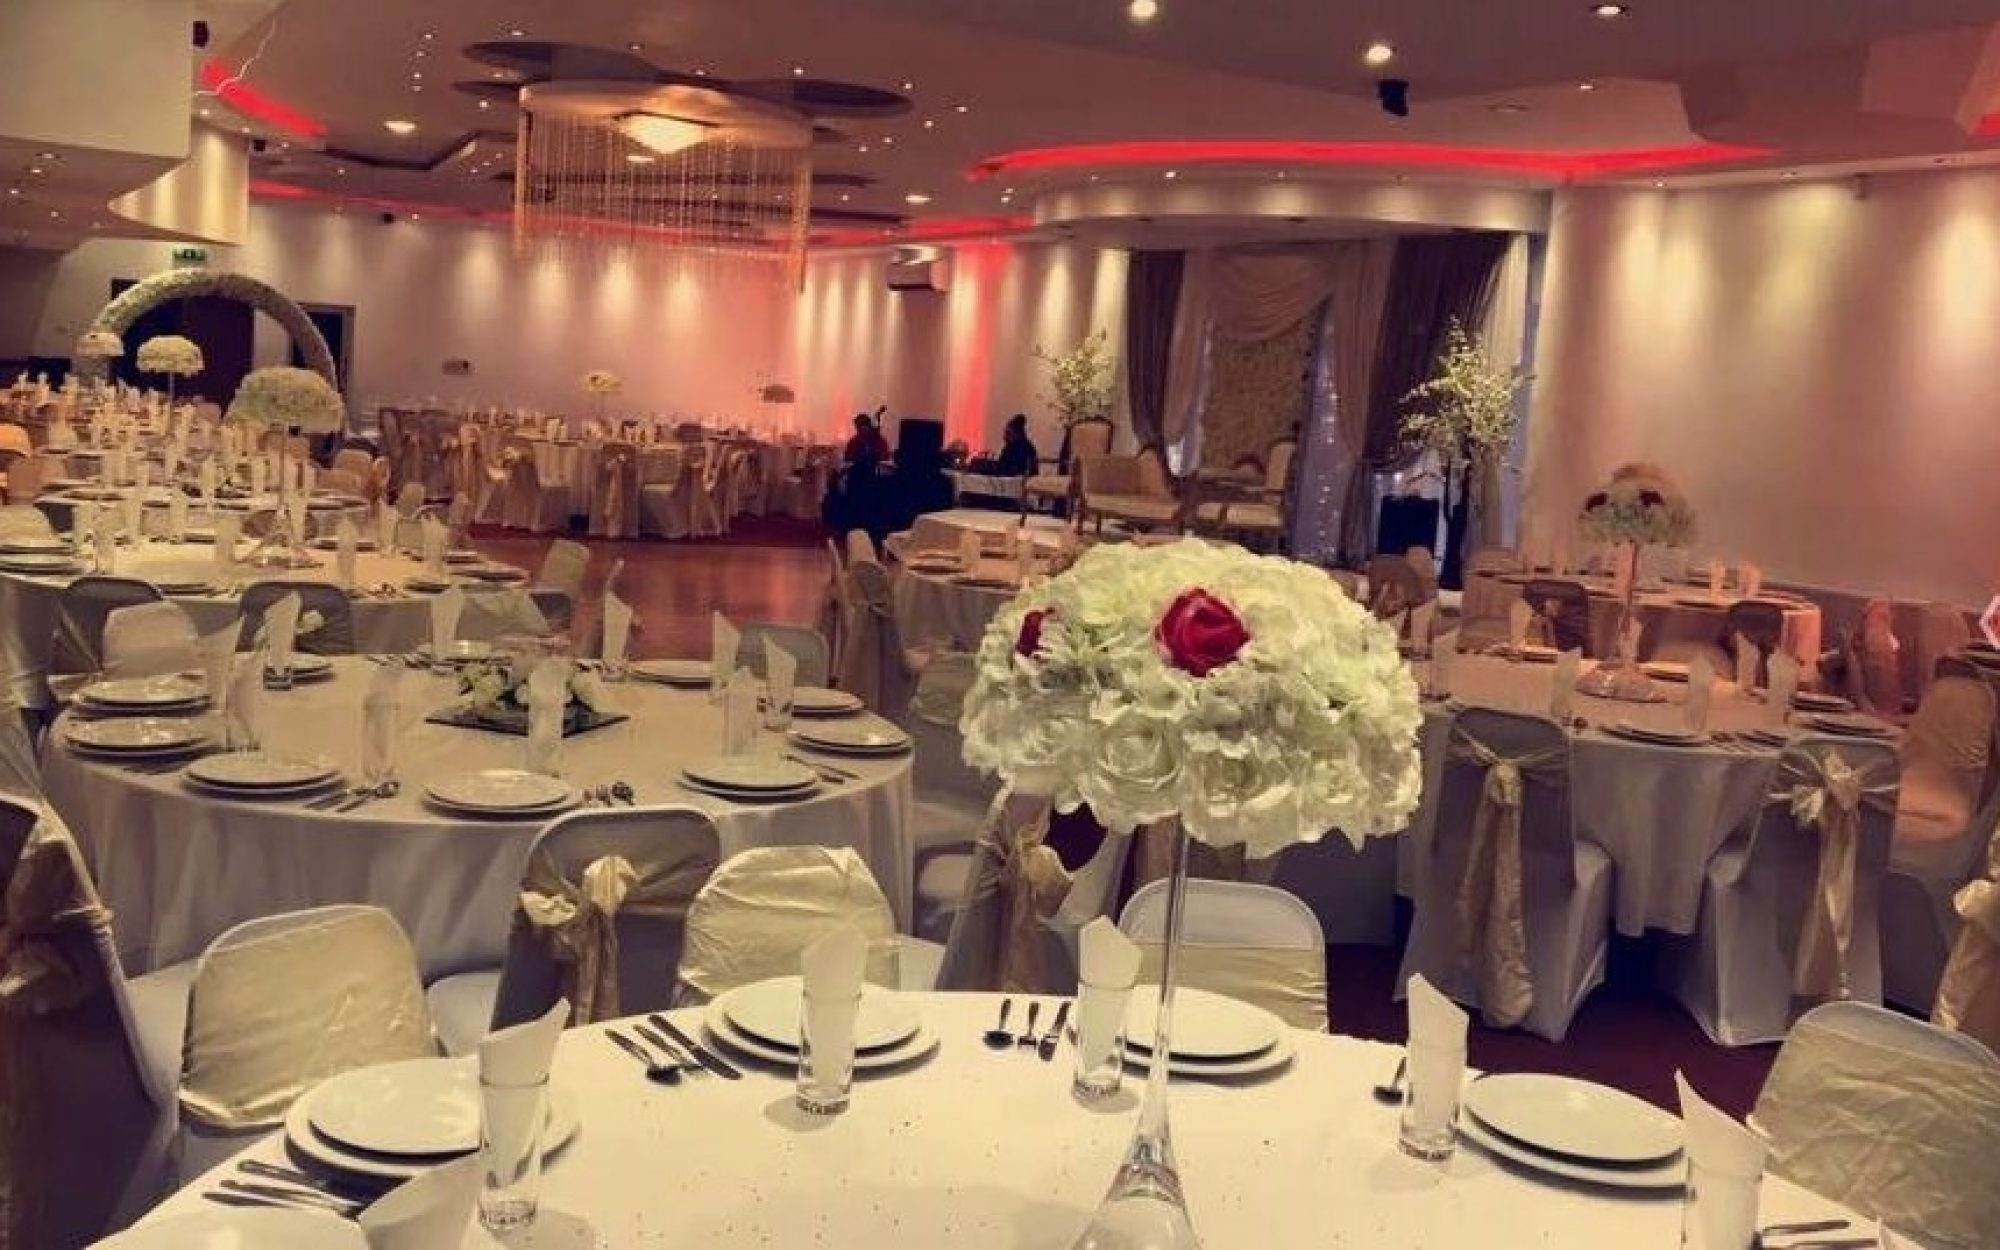 The Elegance Banqueting Suite